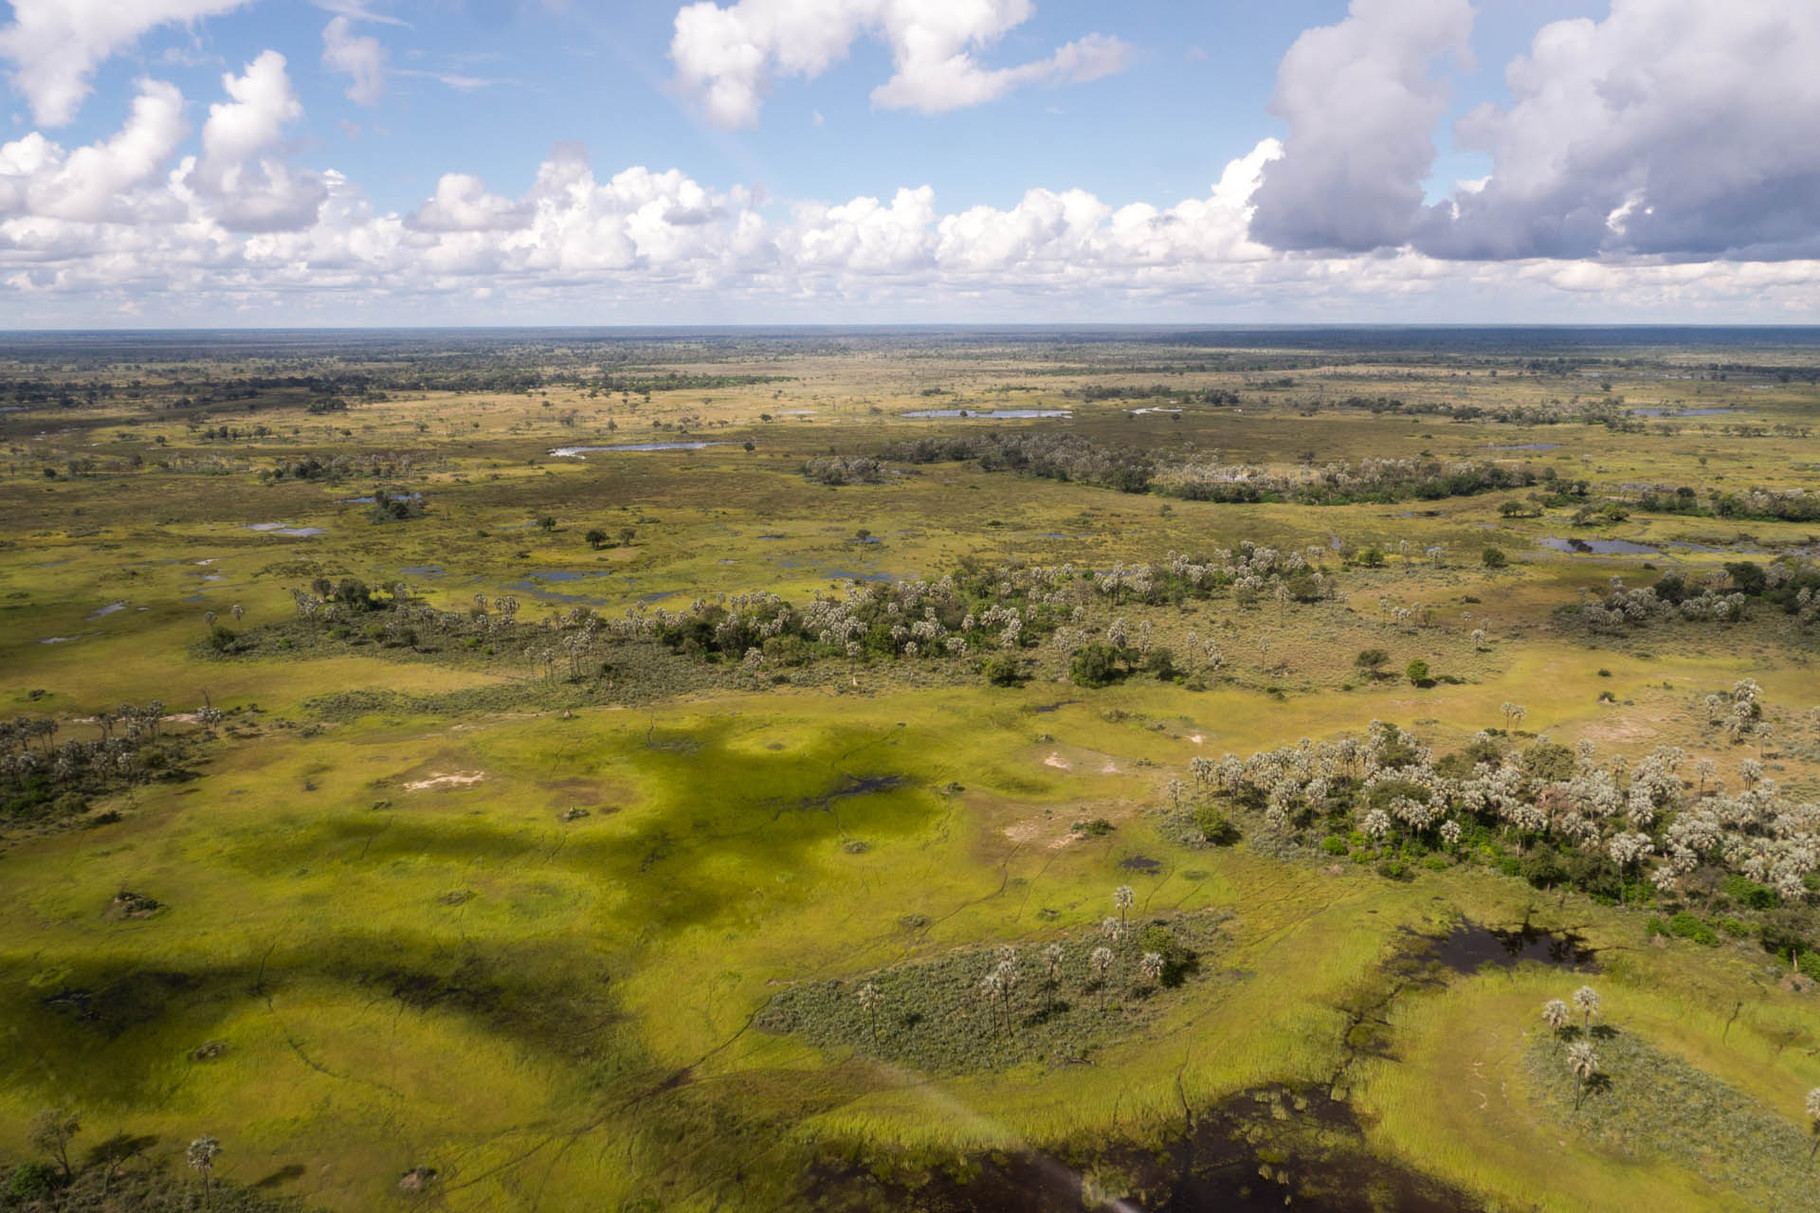 Bird eye view of Okavango delta